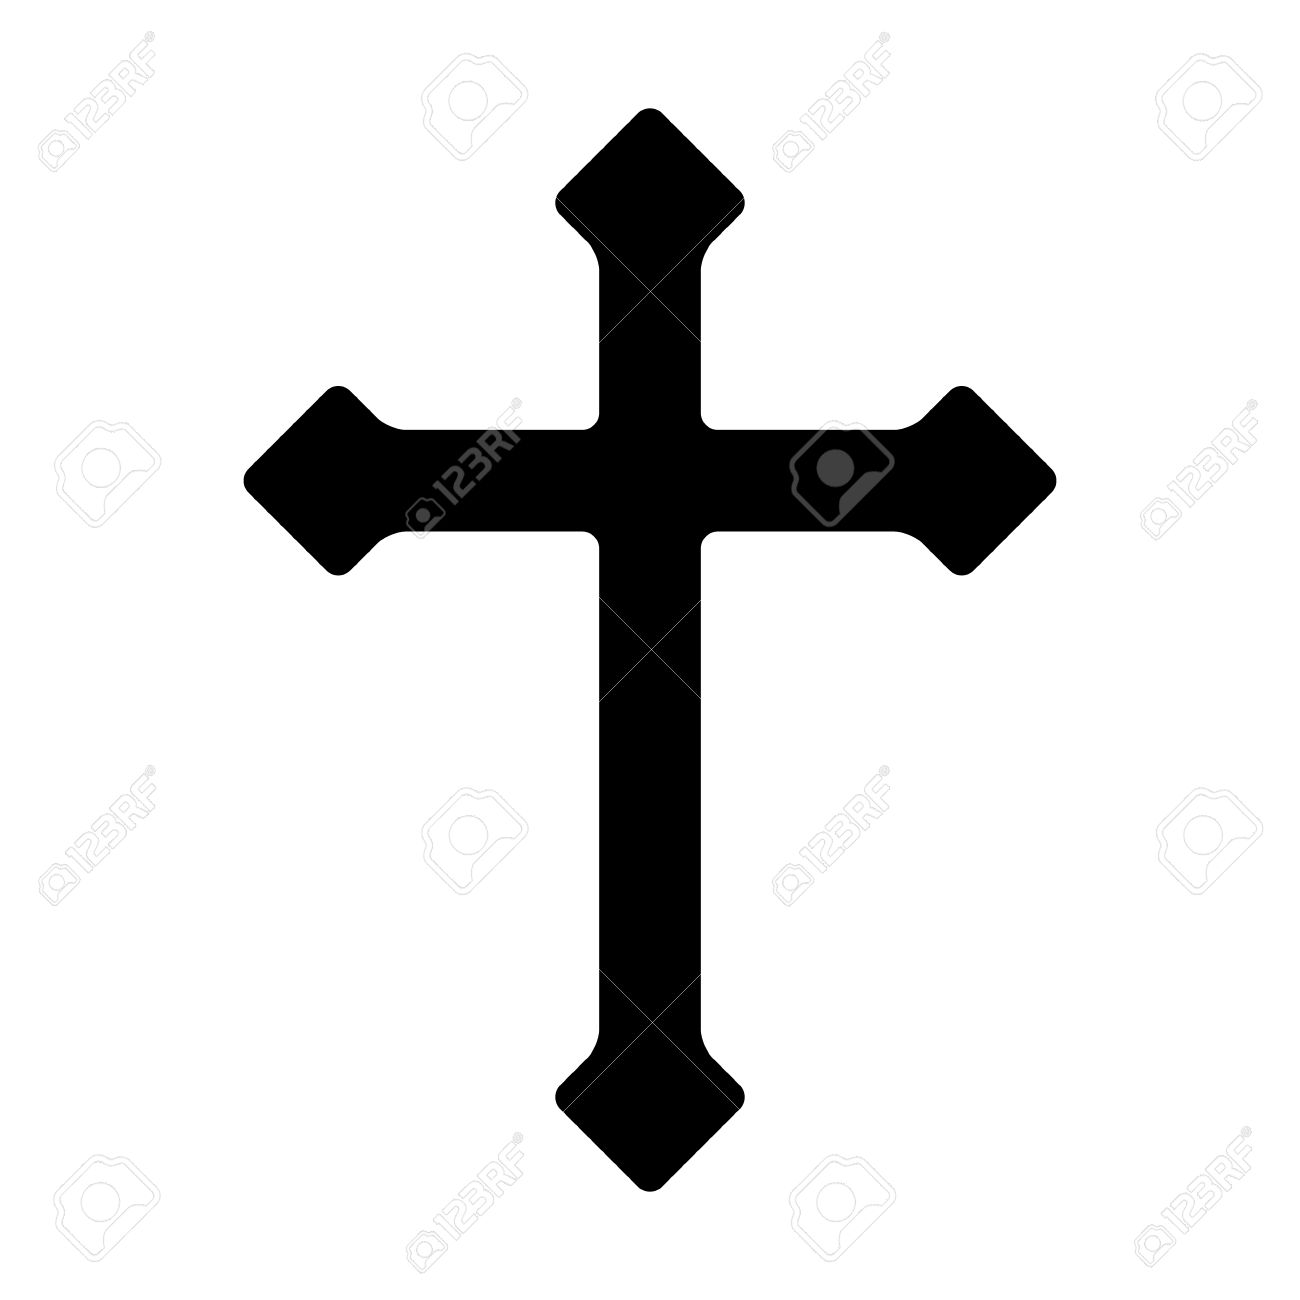 Decorative Christian Cross Symbol Of Christianity Flat Icon For